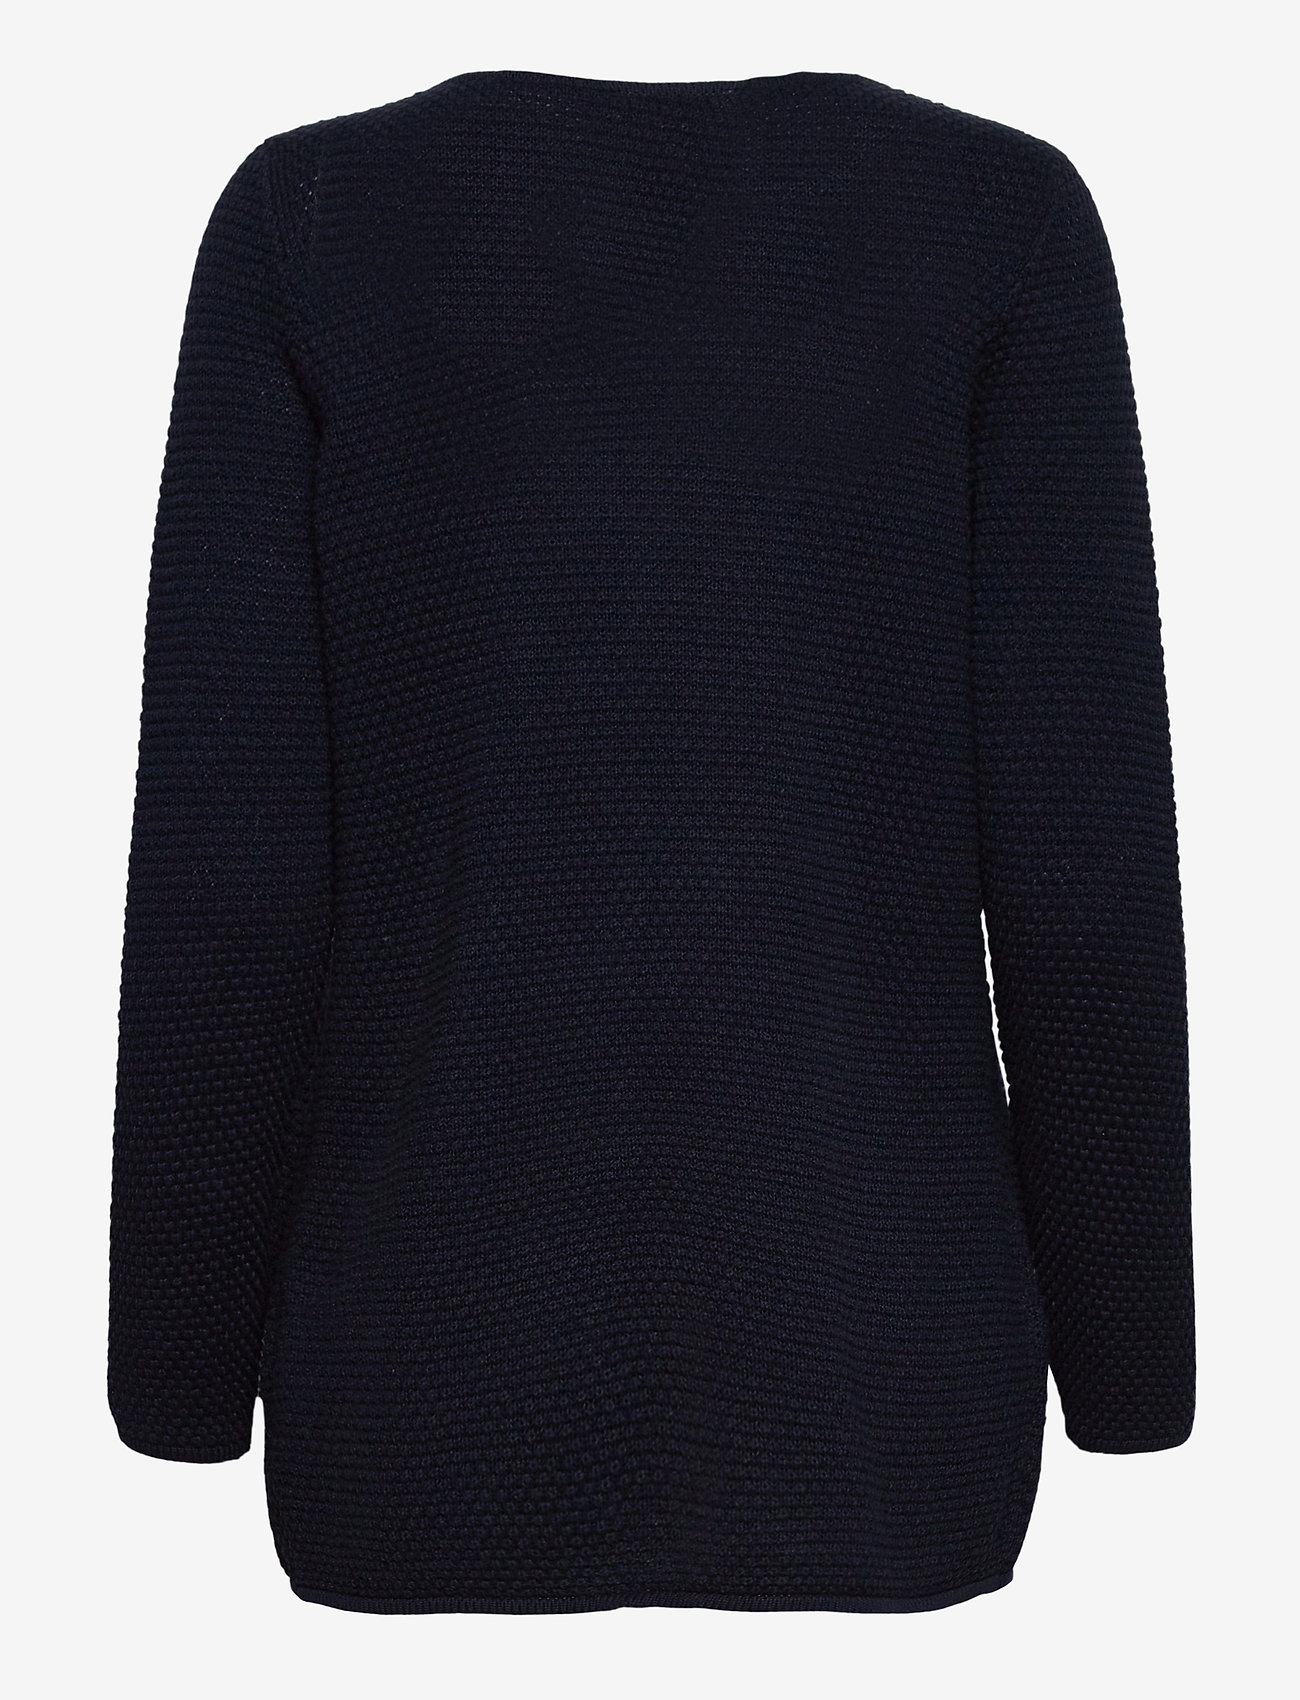 b.young - BYMIKALA STRUCTURE CARDIGAN - koftor - copenhagen night - 1